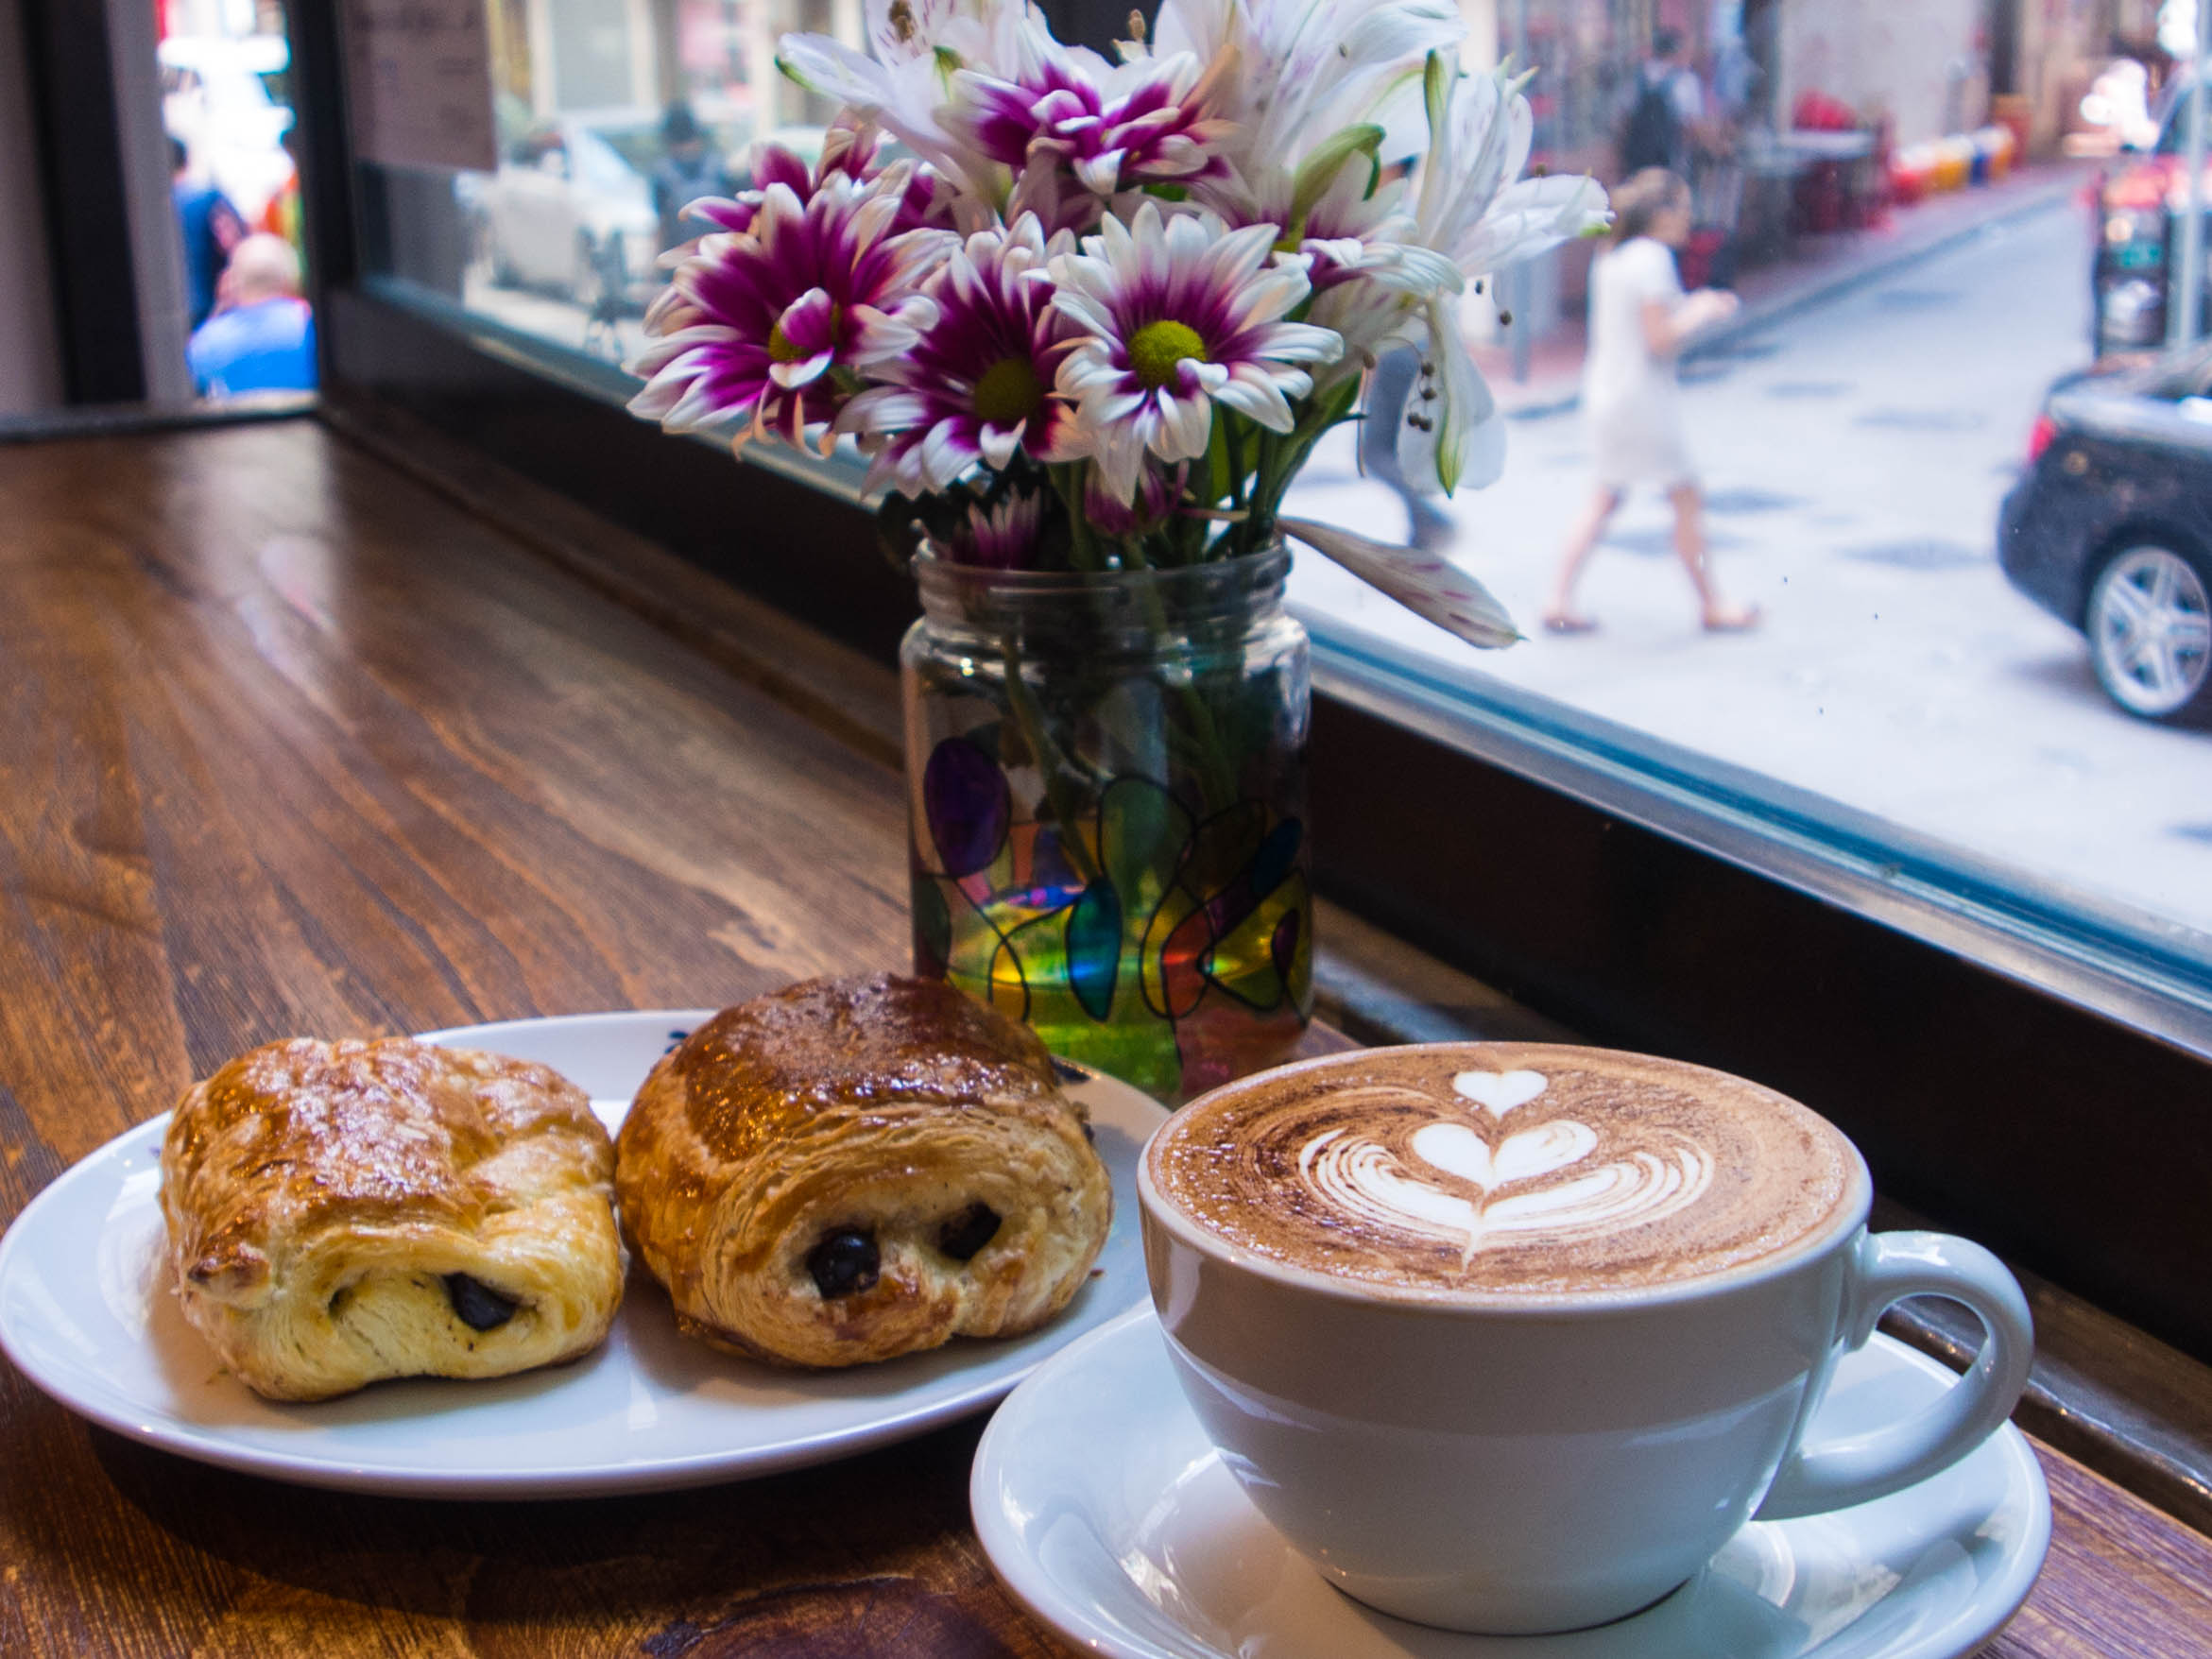 Why50 cappuccino and croisant.